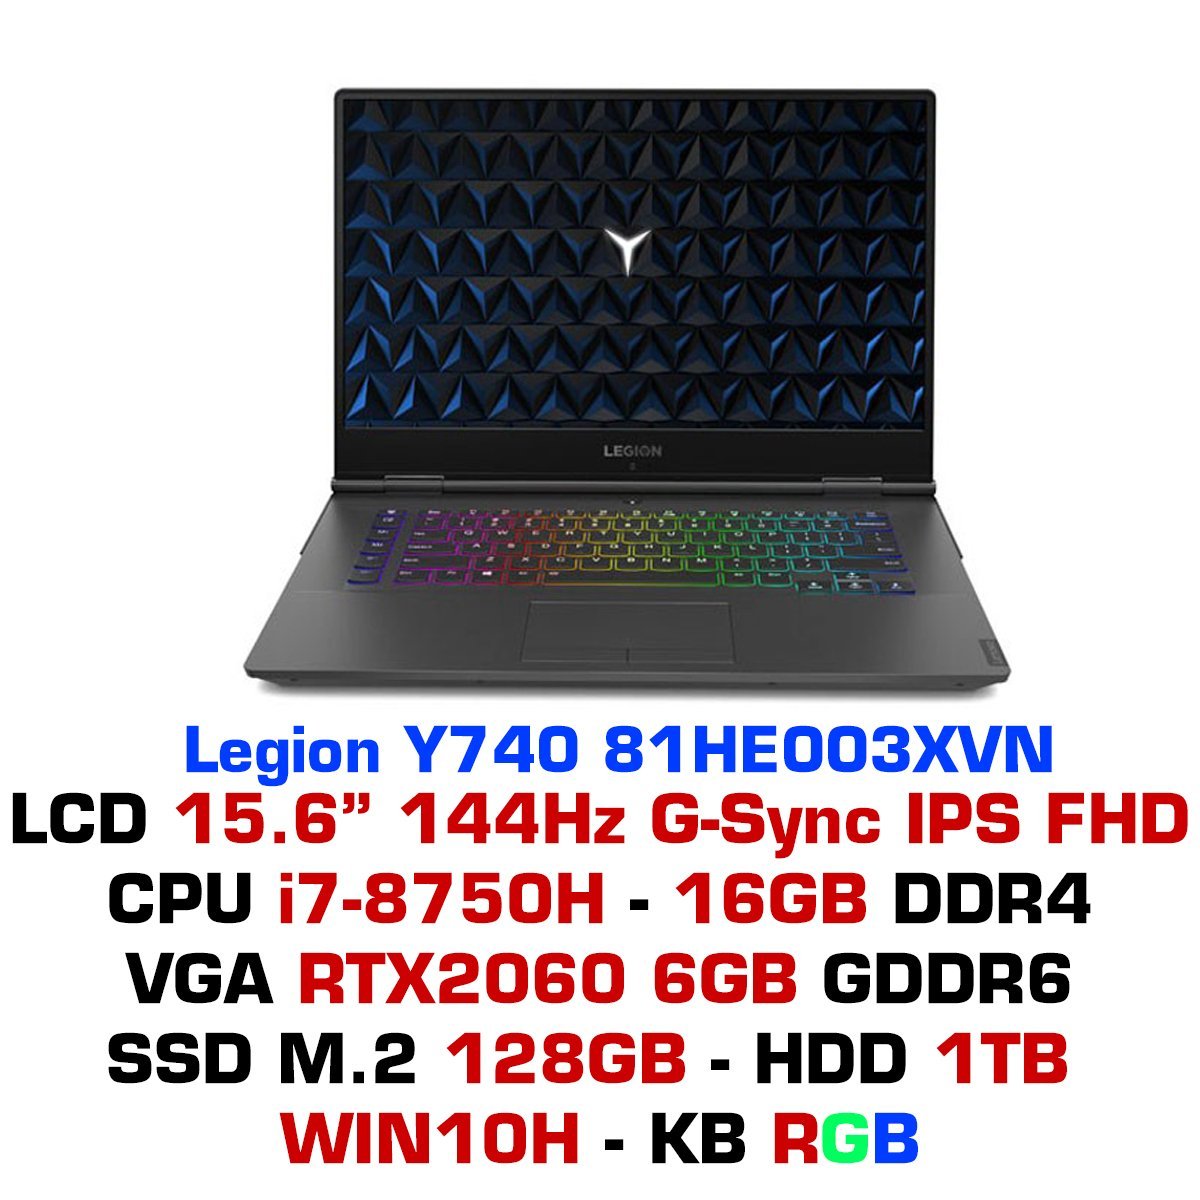 Laptop Lenovo Legion Y740 81HE003XVN